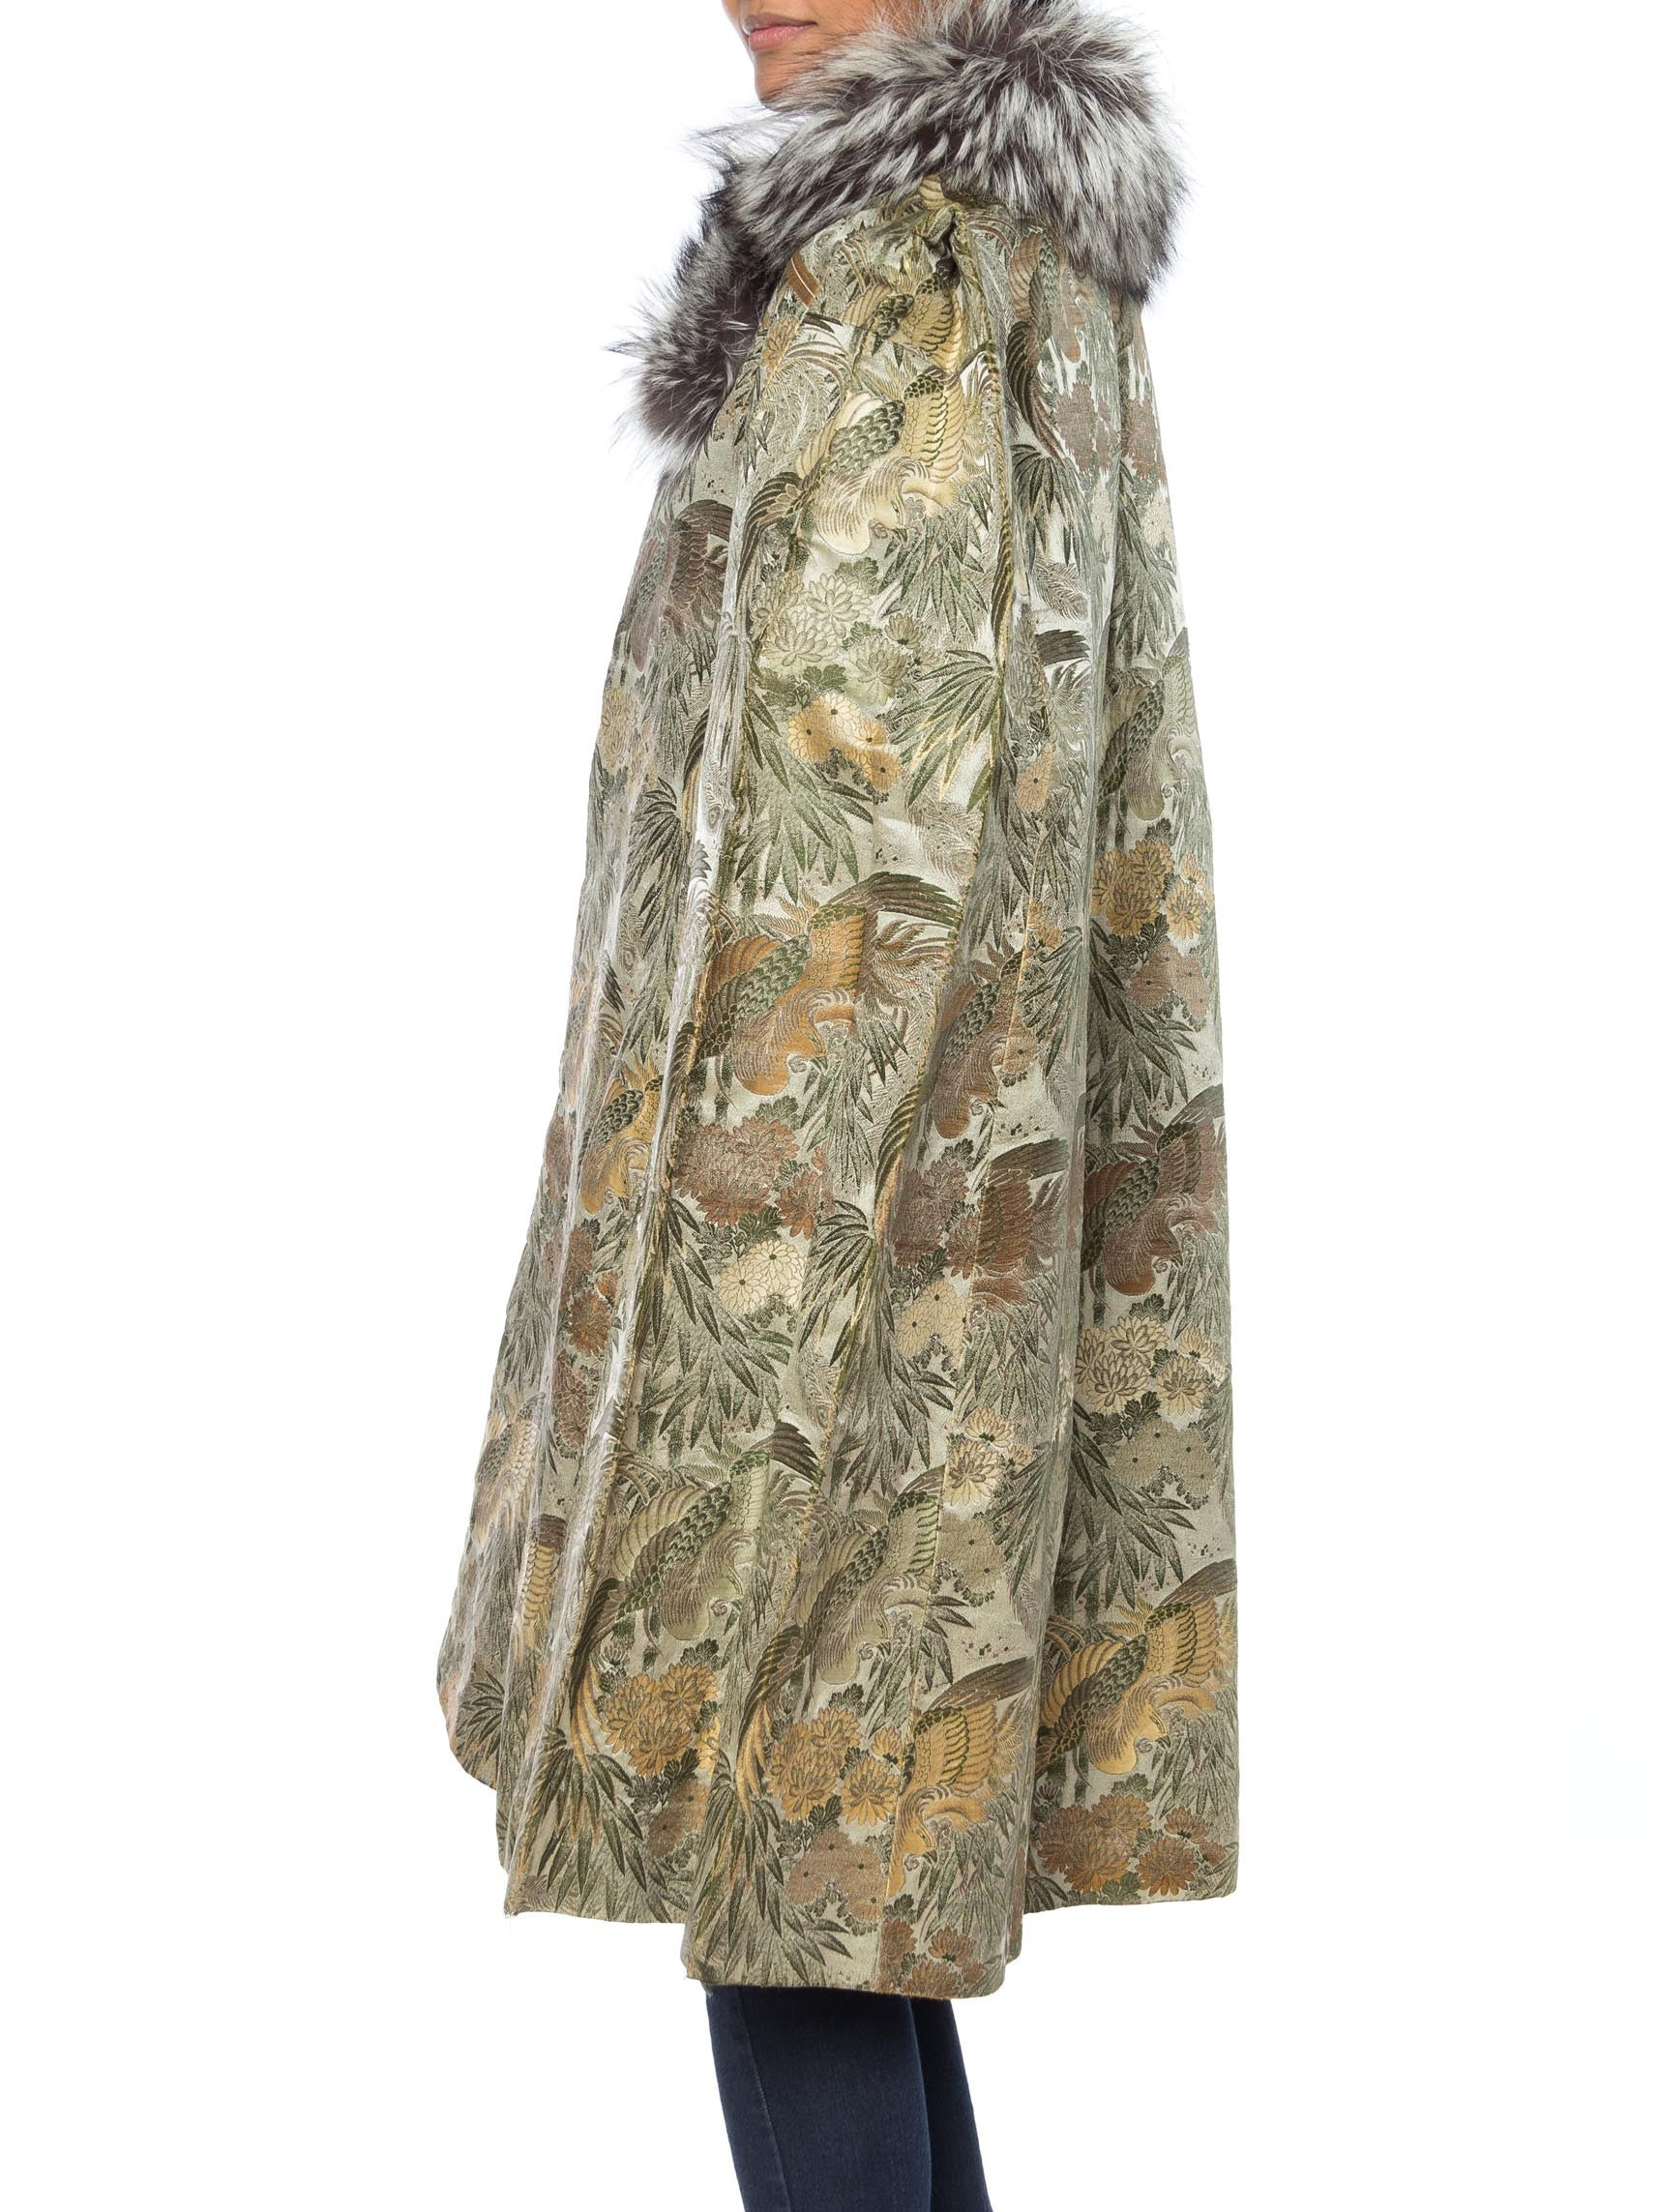 1940S Green & Gold Silk Cape Made From Antique Japanese Jacquard With Fox Fur Collar